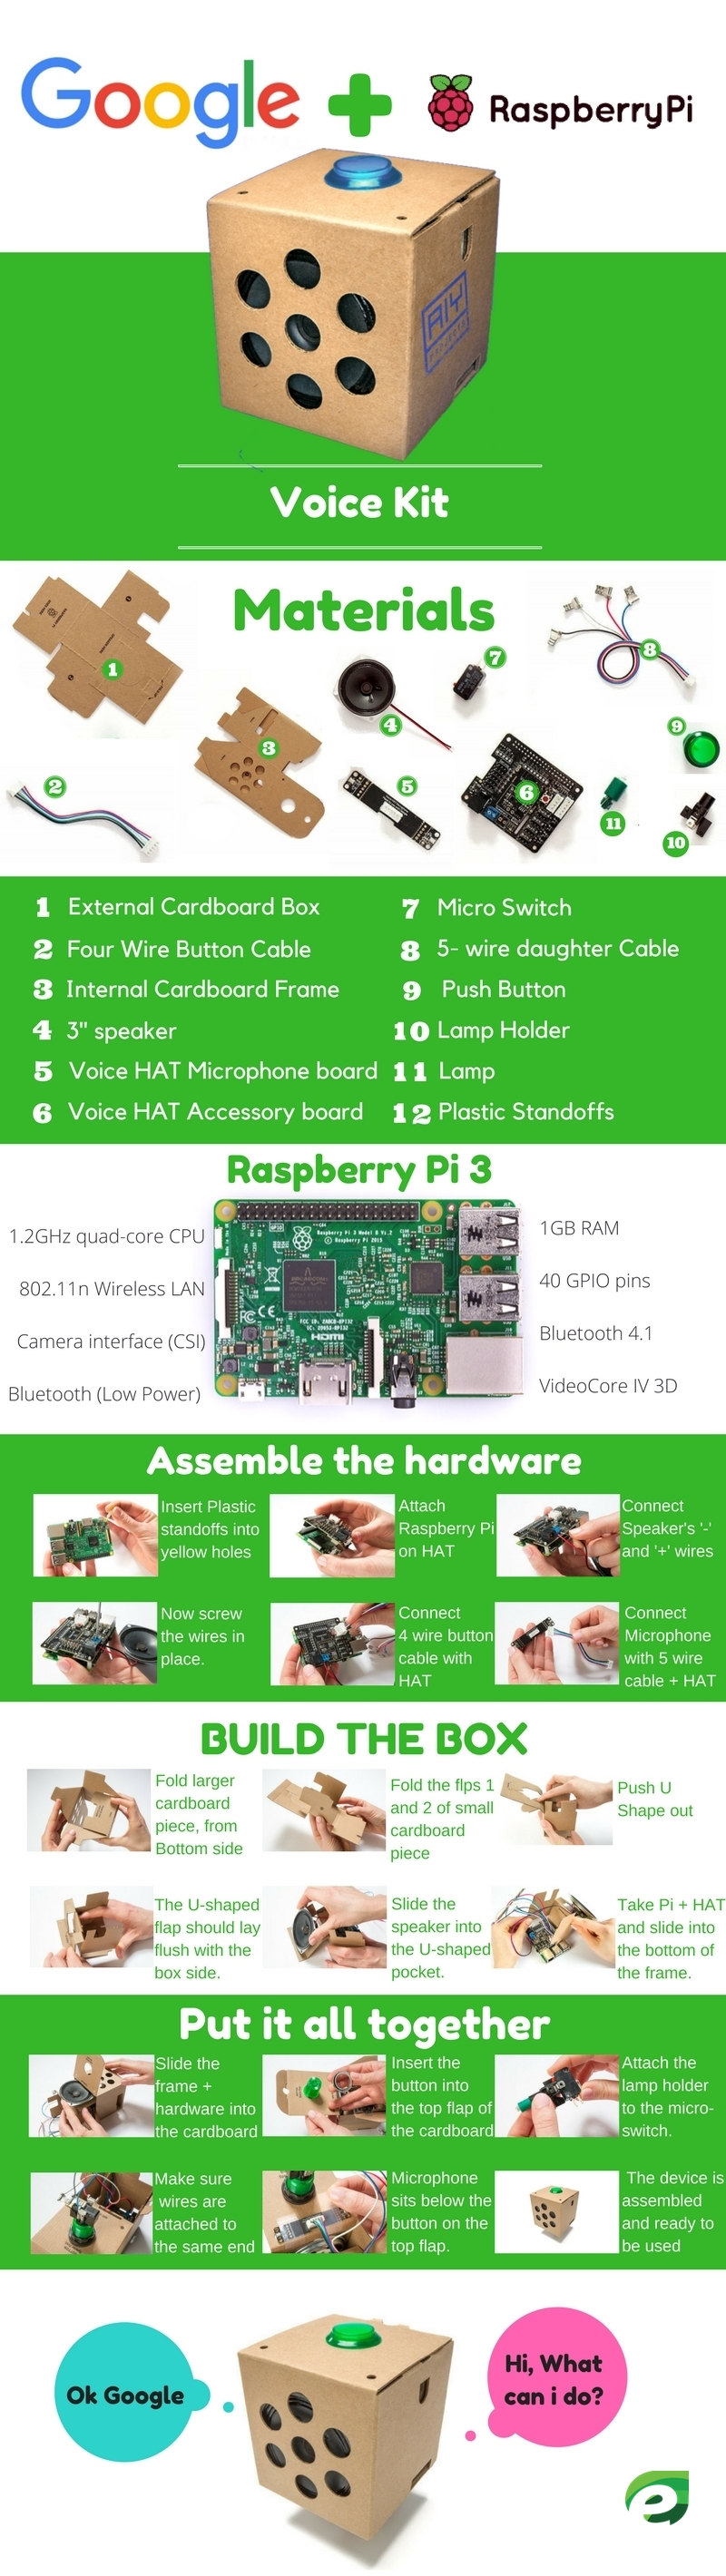 Google-voicd-kit-raspburry-infographic.jpg